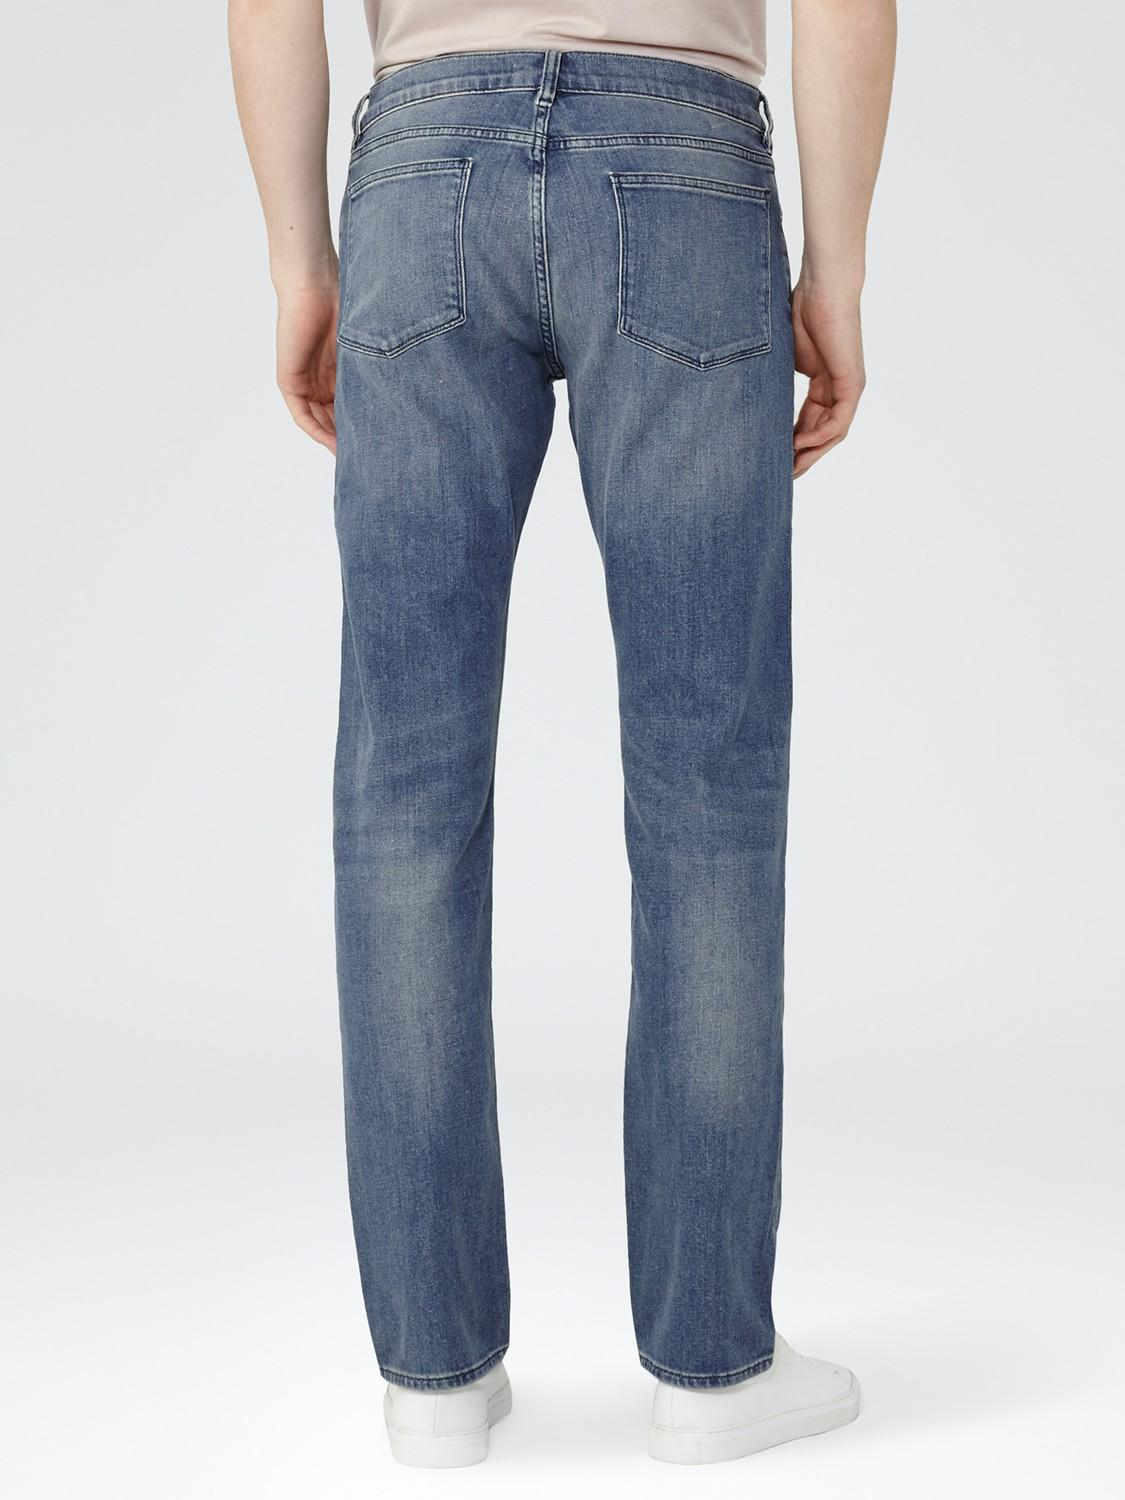 Reiss Denim Watergate Washed Slim Fit Stretch Jeans in Mid Blue (Blue) for Men